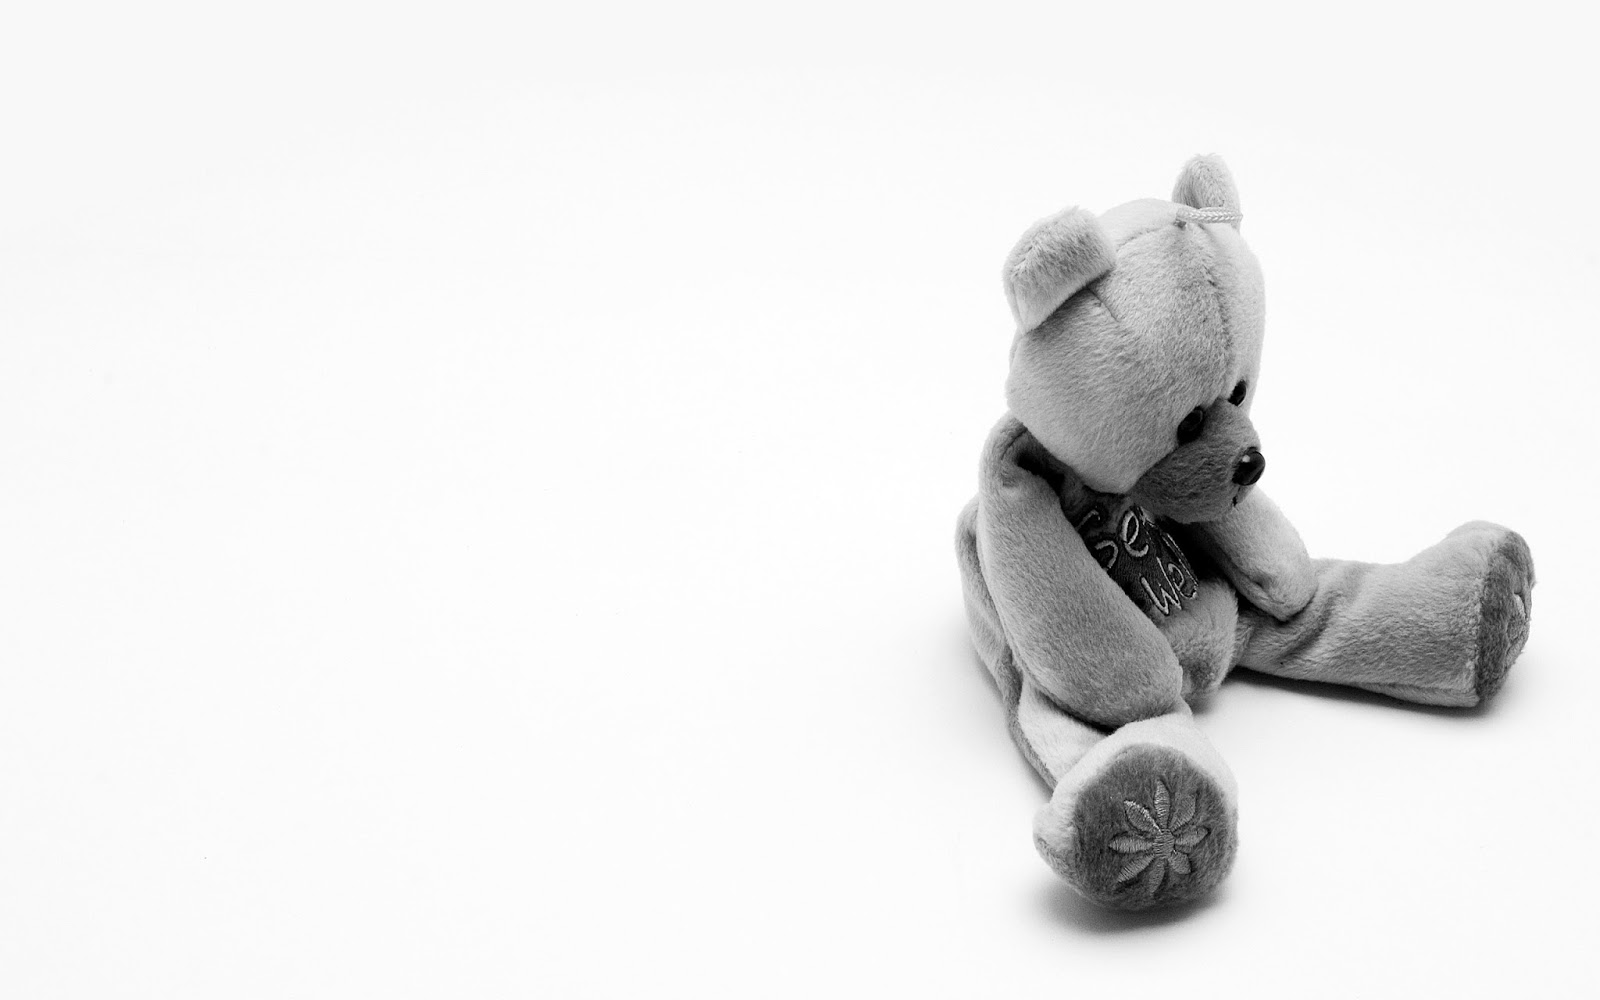 Beautiful Wallpapers Of Lonely Girl Miss You Face Photos Of Sad Teddy Bear Upset And Sitting